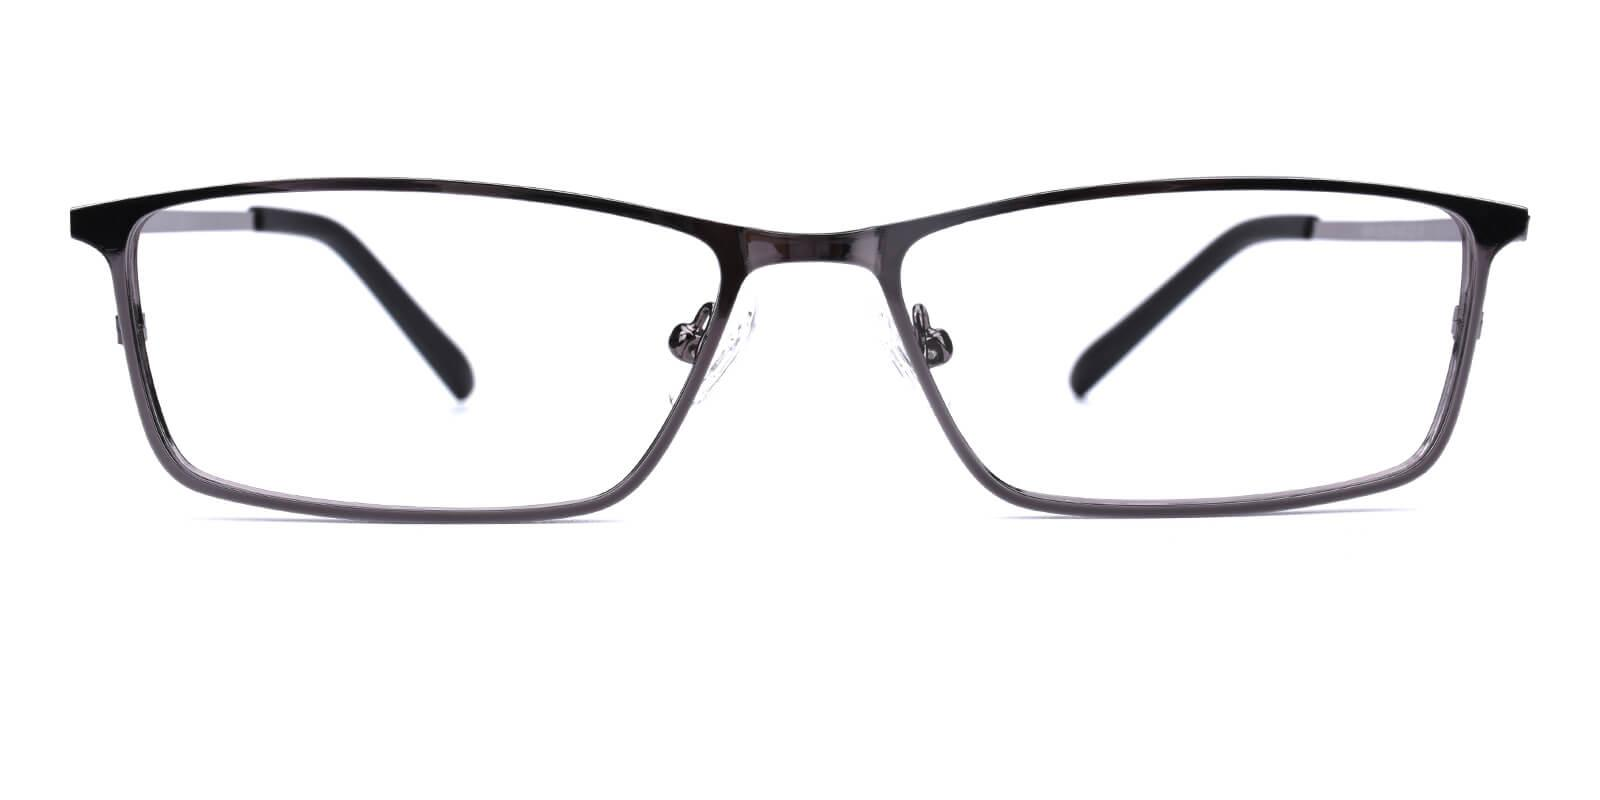 Wildfire-Gun-Rectangle-Metal-Eyeglasses-additional2